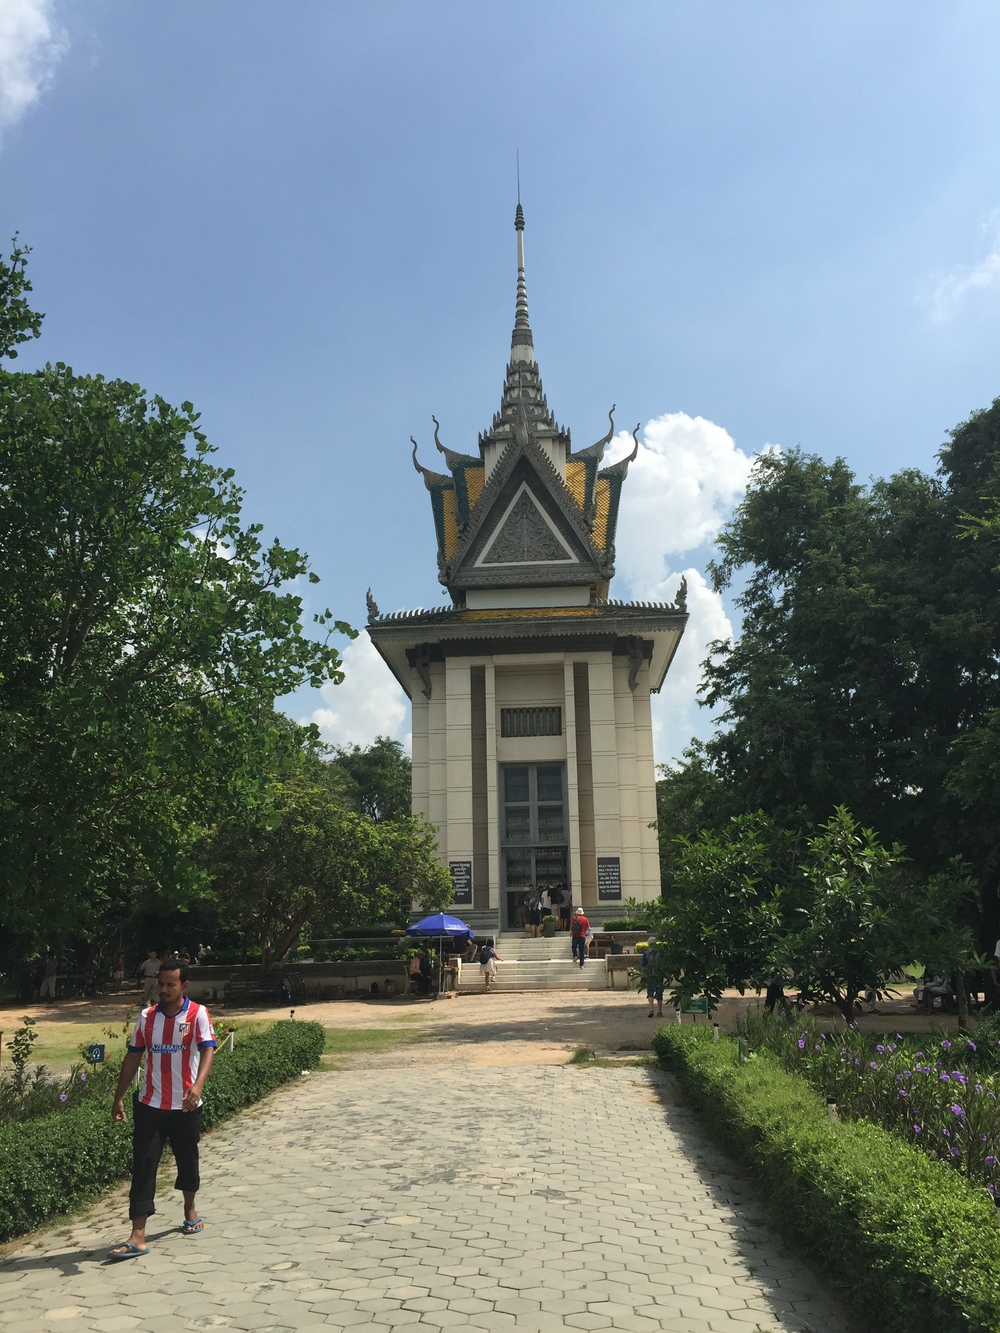 This is a place called Choueng Ek, where Pol Pot's regime murdered thousands of people. They hung loud speakers from the trees so that they could drown out the screams. Very upsetting place.